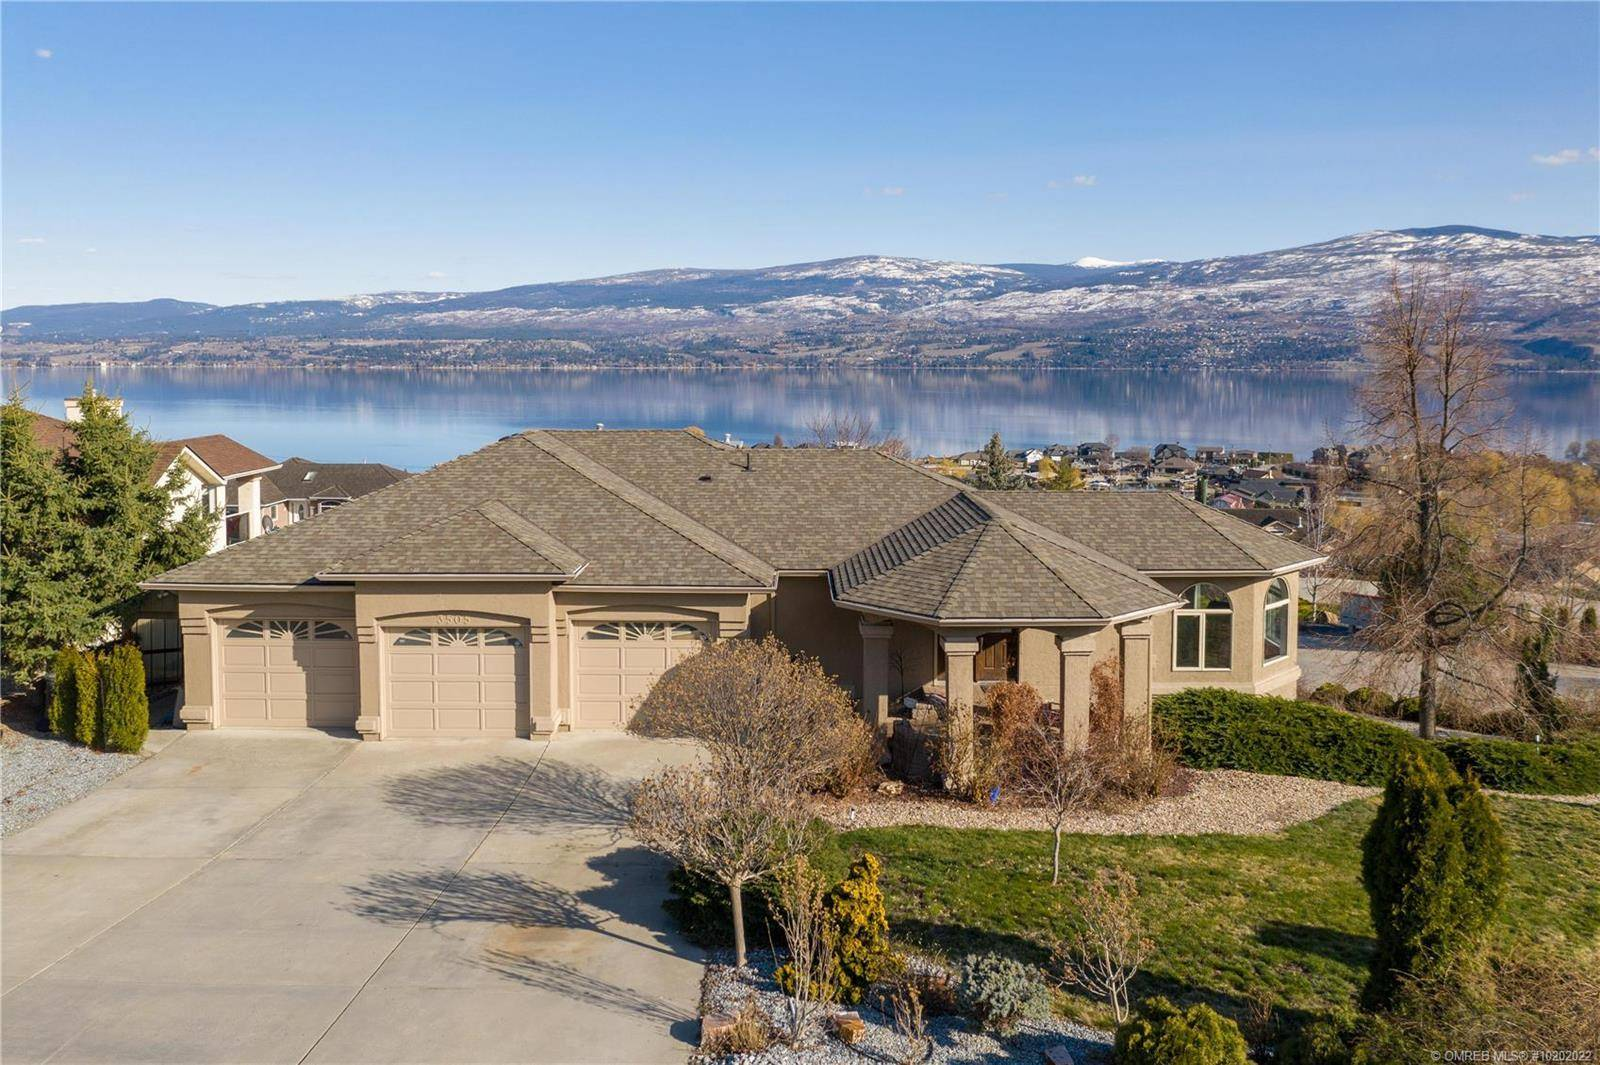 House for sale at 3505 Apple Way Blvd West Kelowna British Columbia - MLS: 10202022